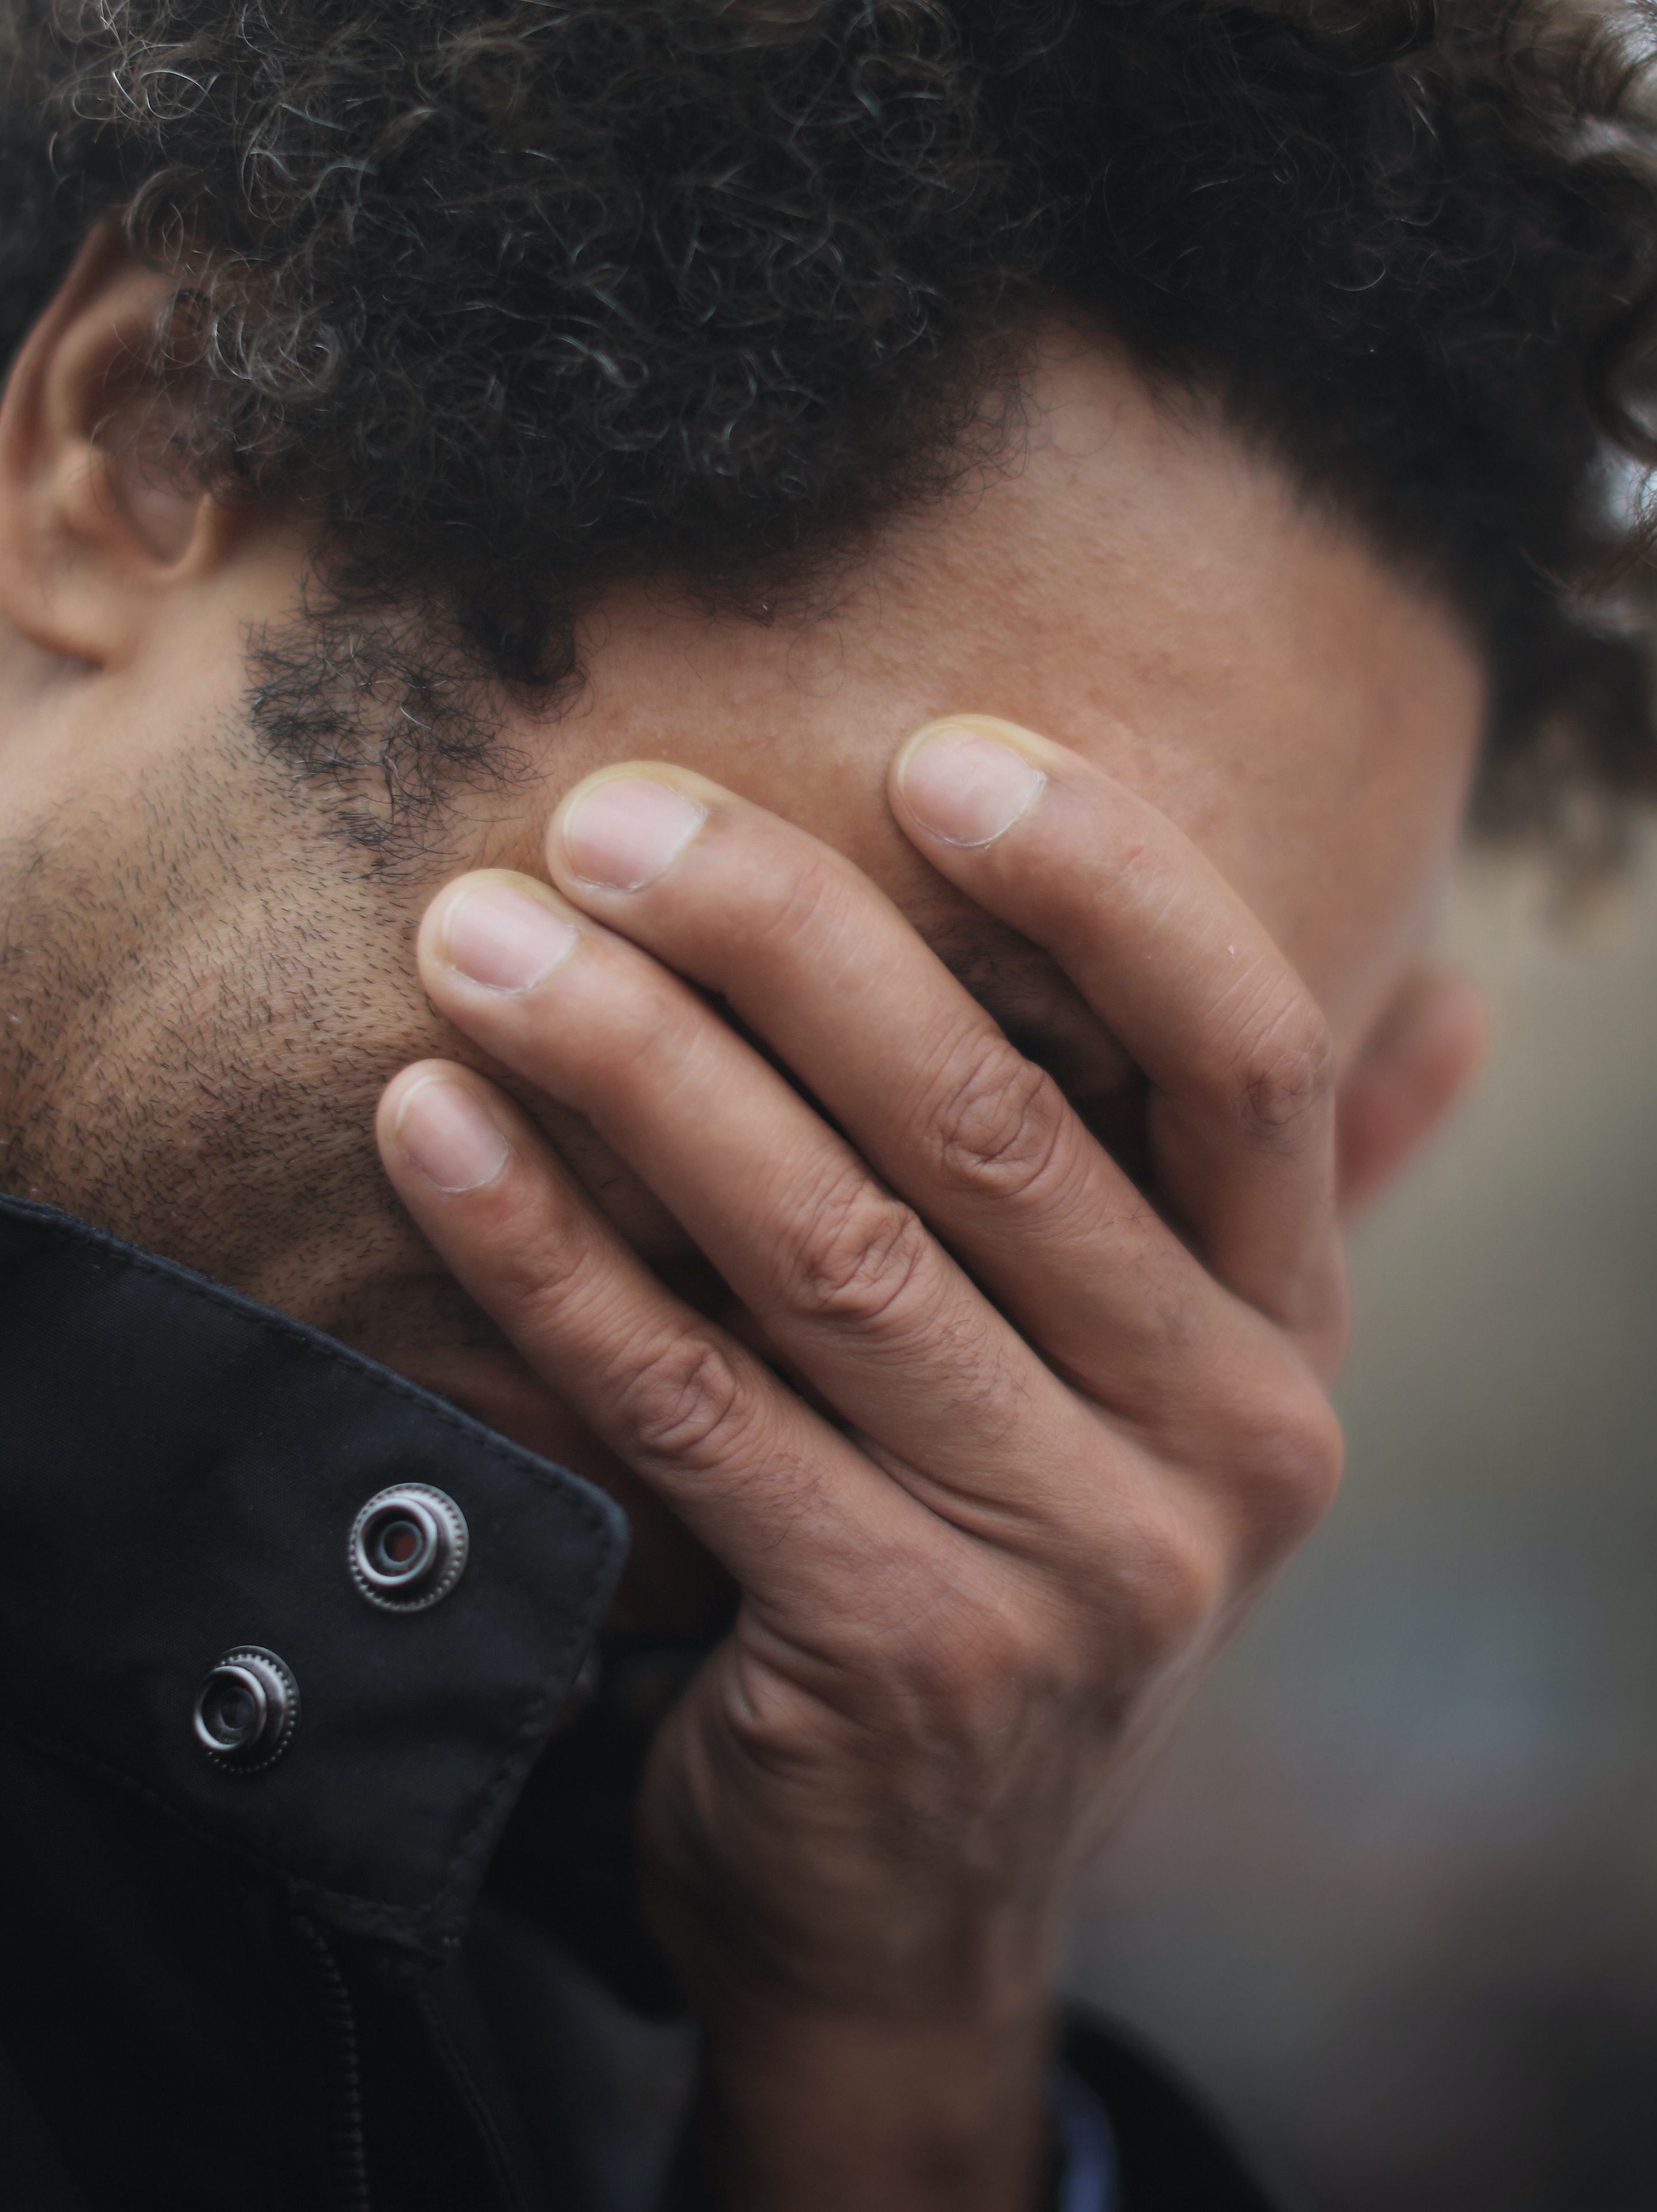 A man weeps for a lost friend as people gather to observe a minute-silence at the Place de la Republique in memory of the victims of the Paris terror attacks last Friday, on November 16, 2015 in Paris, France. Countries across Europe will join France, currently observing three days of national mourning, in a one minute-silence today in an expression of solidarity with the victims of the terrorist attacks, which left at least 129 people dead and hundreds more injured.